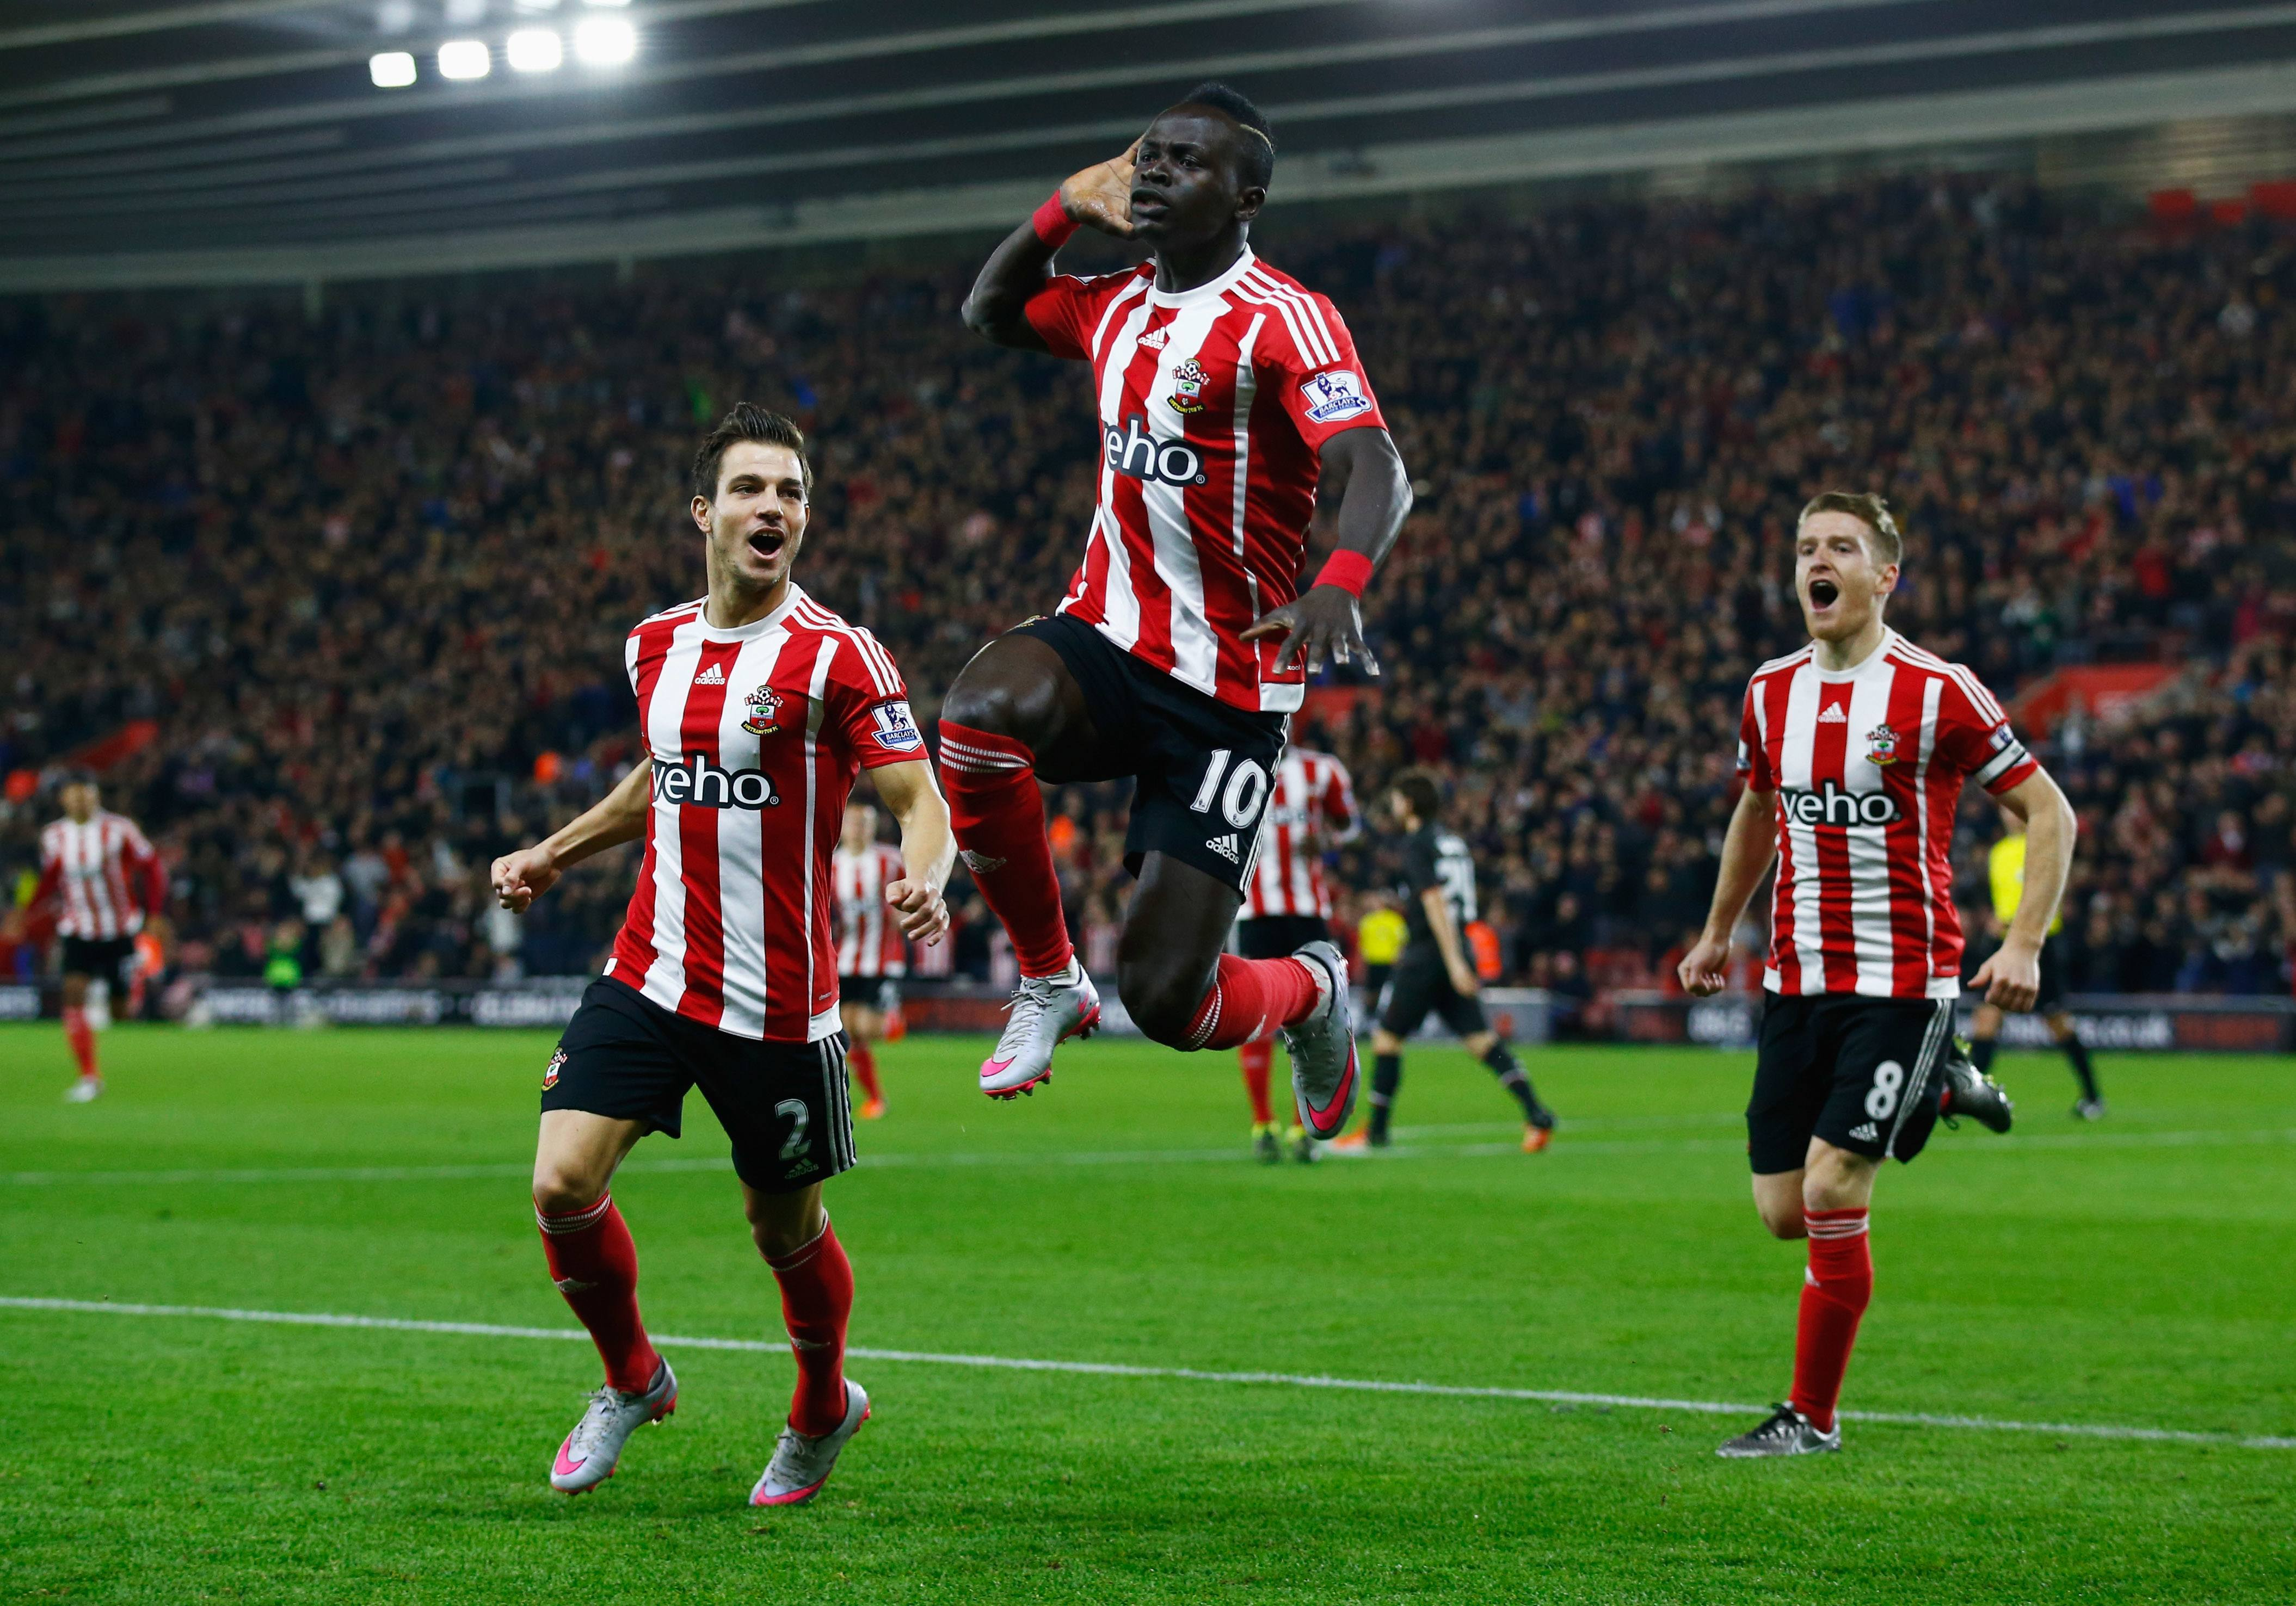 SOUTHAMPTON, ENGLAND - DECEMBER 02: Sadio Mane of Southampton (10) celebrates with team mates as he scores their first goal with a header during the Capital One Cup quarter final match between Southampton and Liverpool at St Mary's Stadium on December 2, 2015 in Southampton, England. (Photo by Clive Rose/Getty Images)